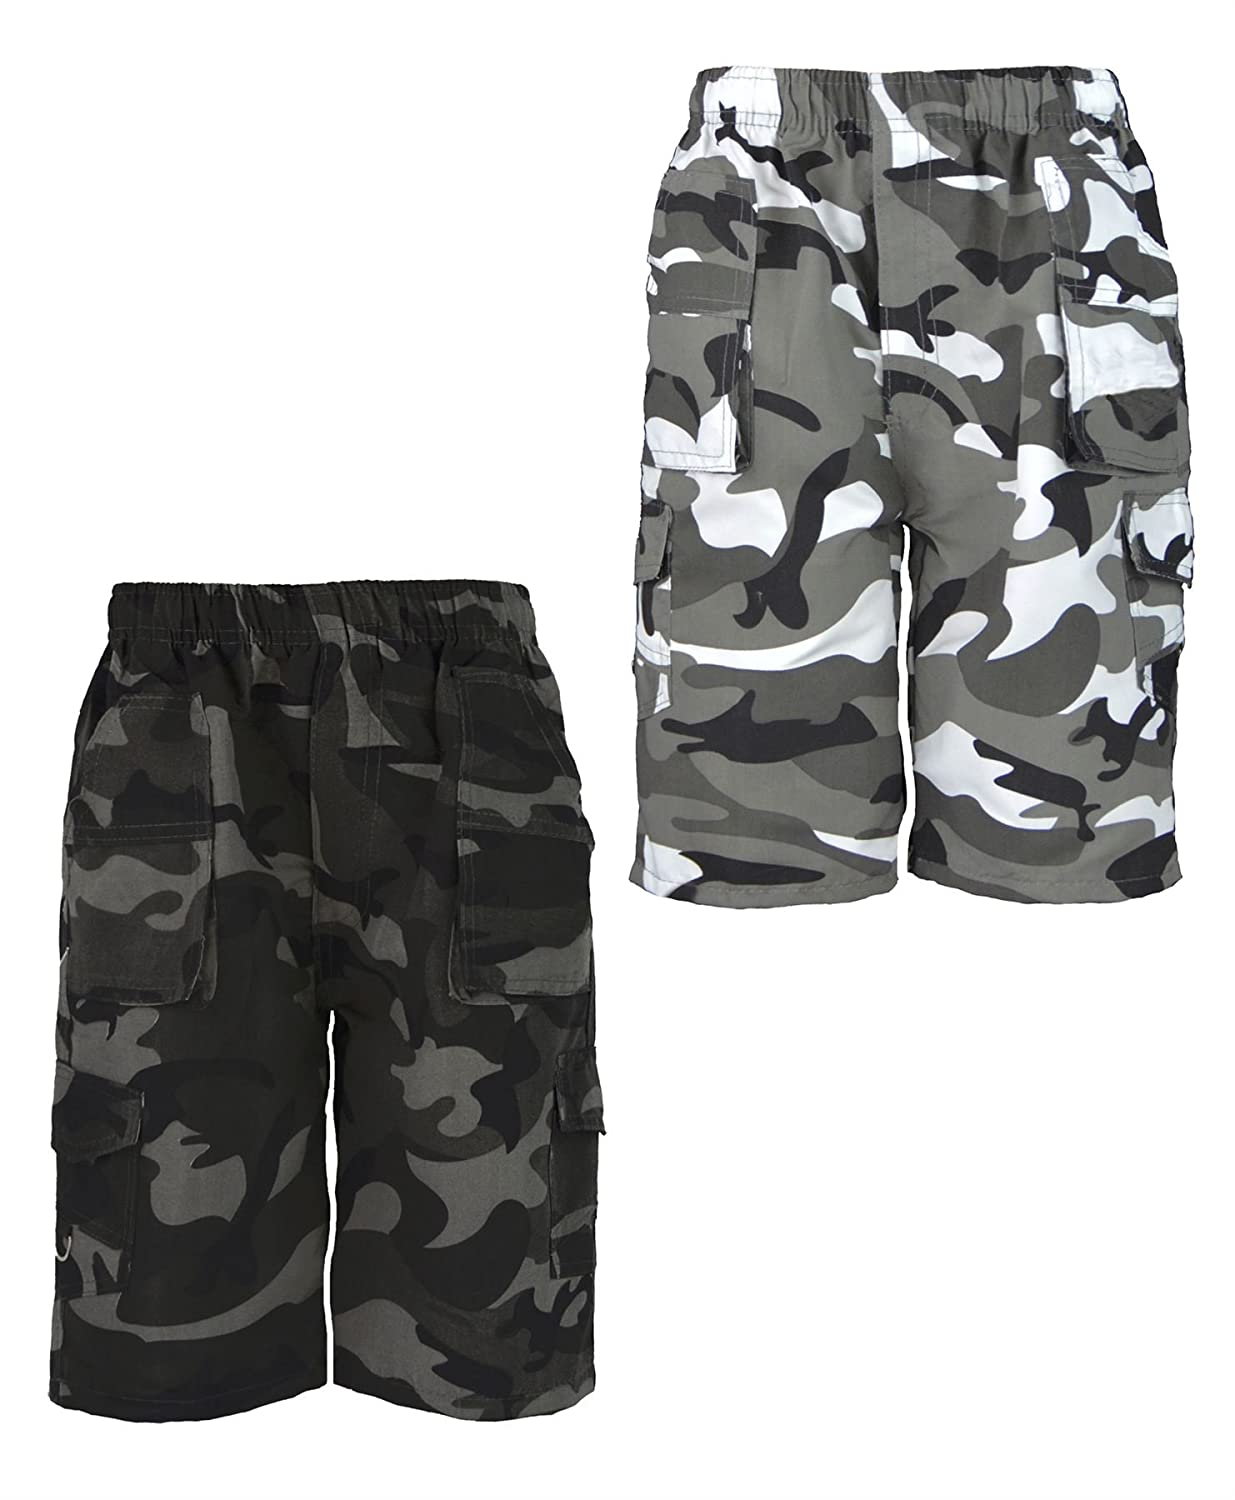 d9557e6707 Amazon.com: LotMart Kids Camouflage Multipocket Shorts Bundle Pack of 2  Colours: Clothing